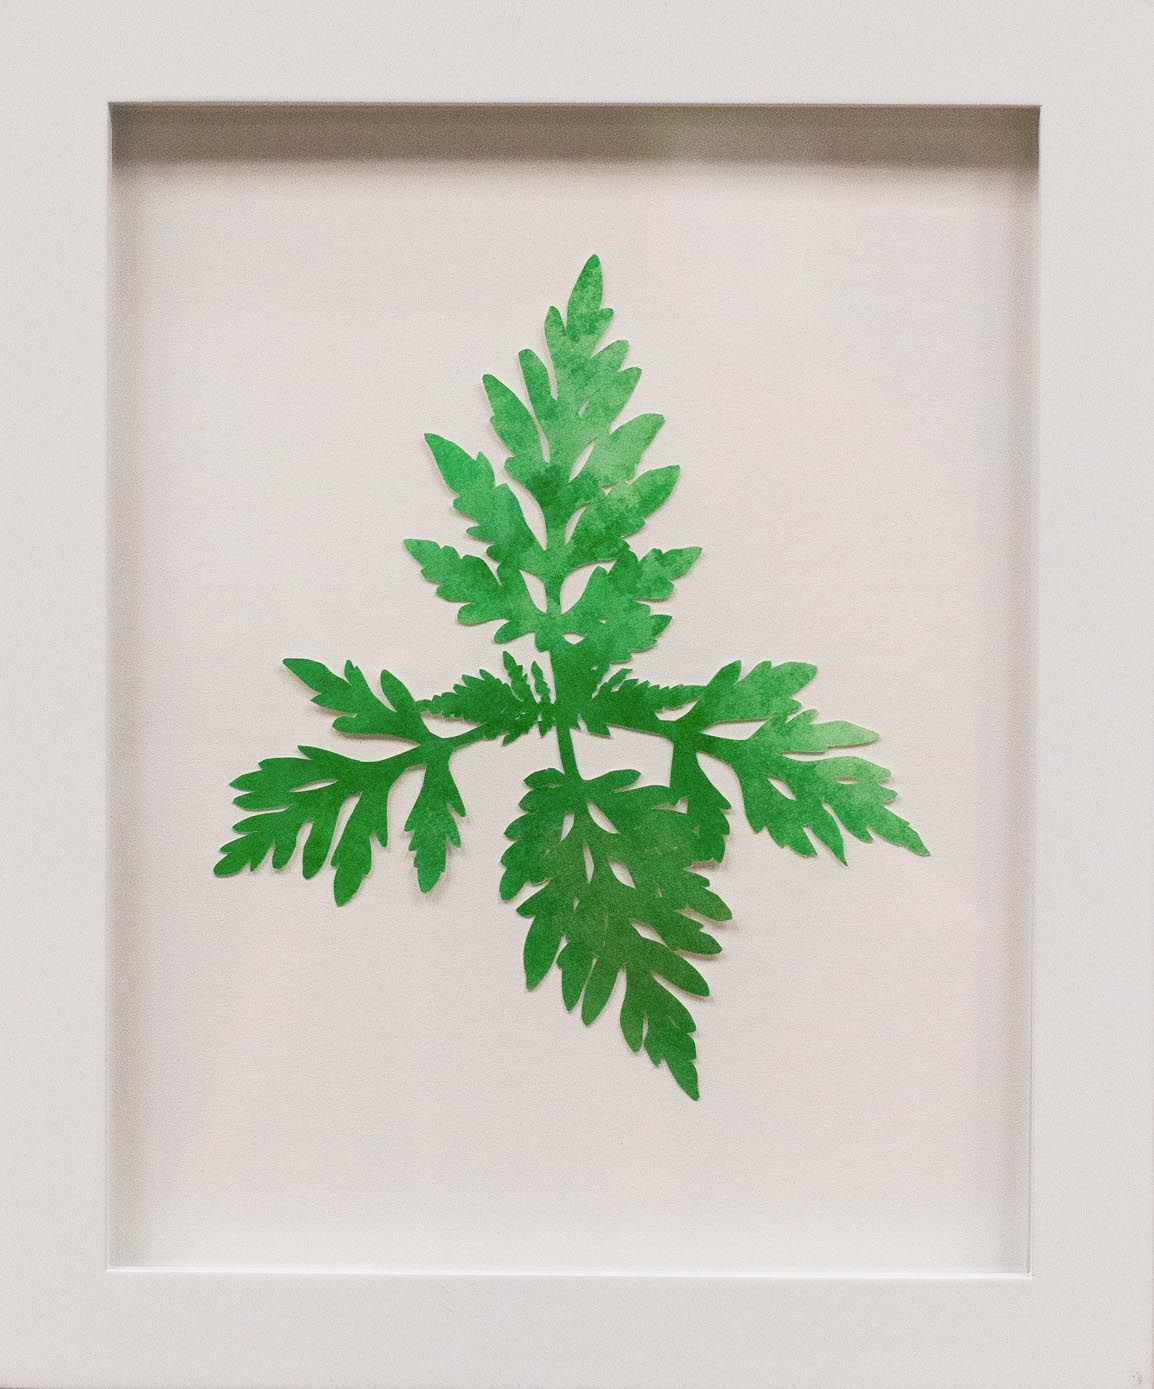 Hannah Cole  Tiny Lacy Weed, 2018  watercolor on cut paper  Framed: 10h x 8w in 25.40h x 20.32w cm  HC_034